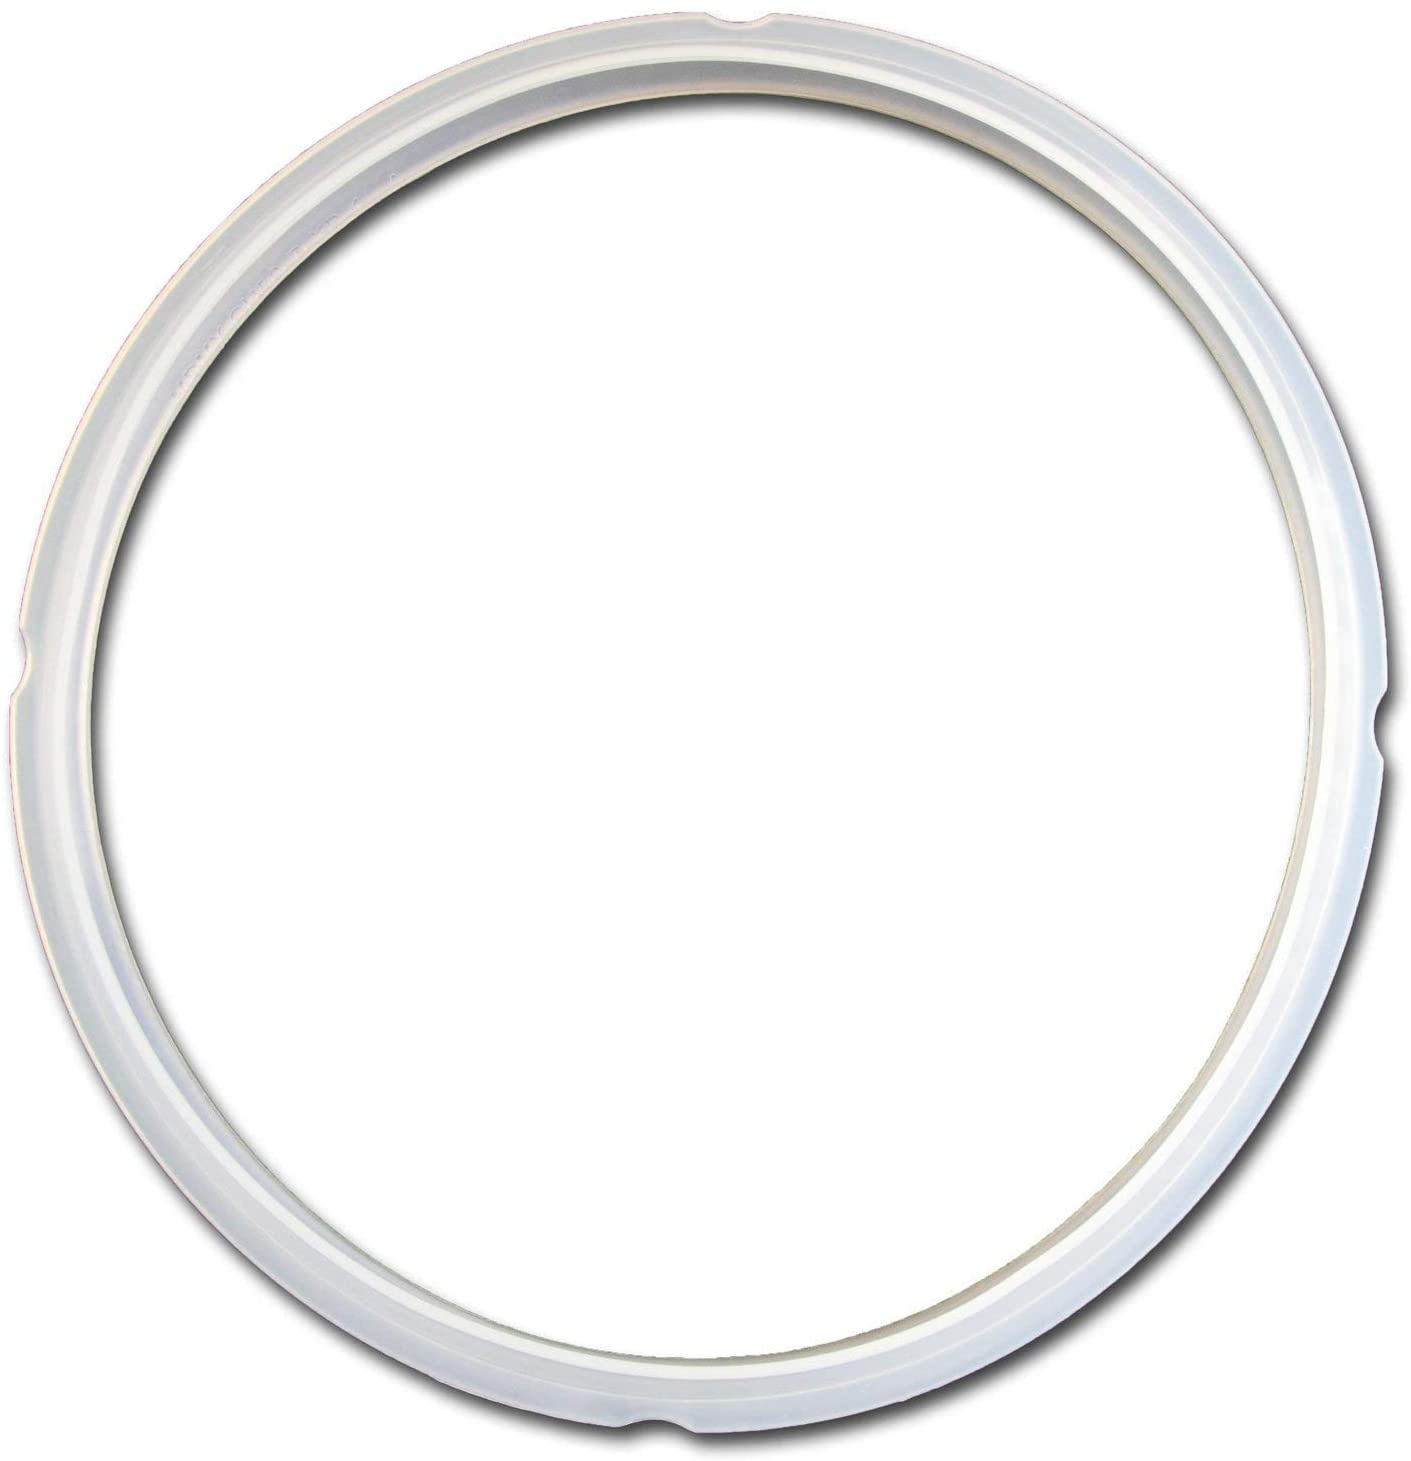 One 1 GJS Gourmet Sealing Gasket Rings Today's Max 44% OFF only with Sele Works